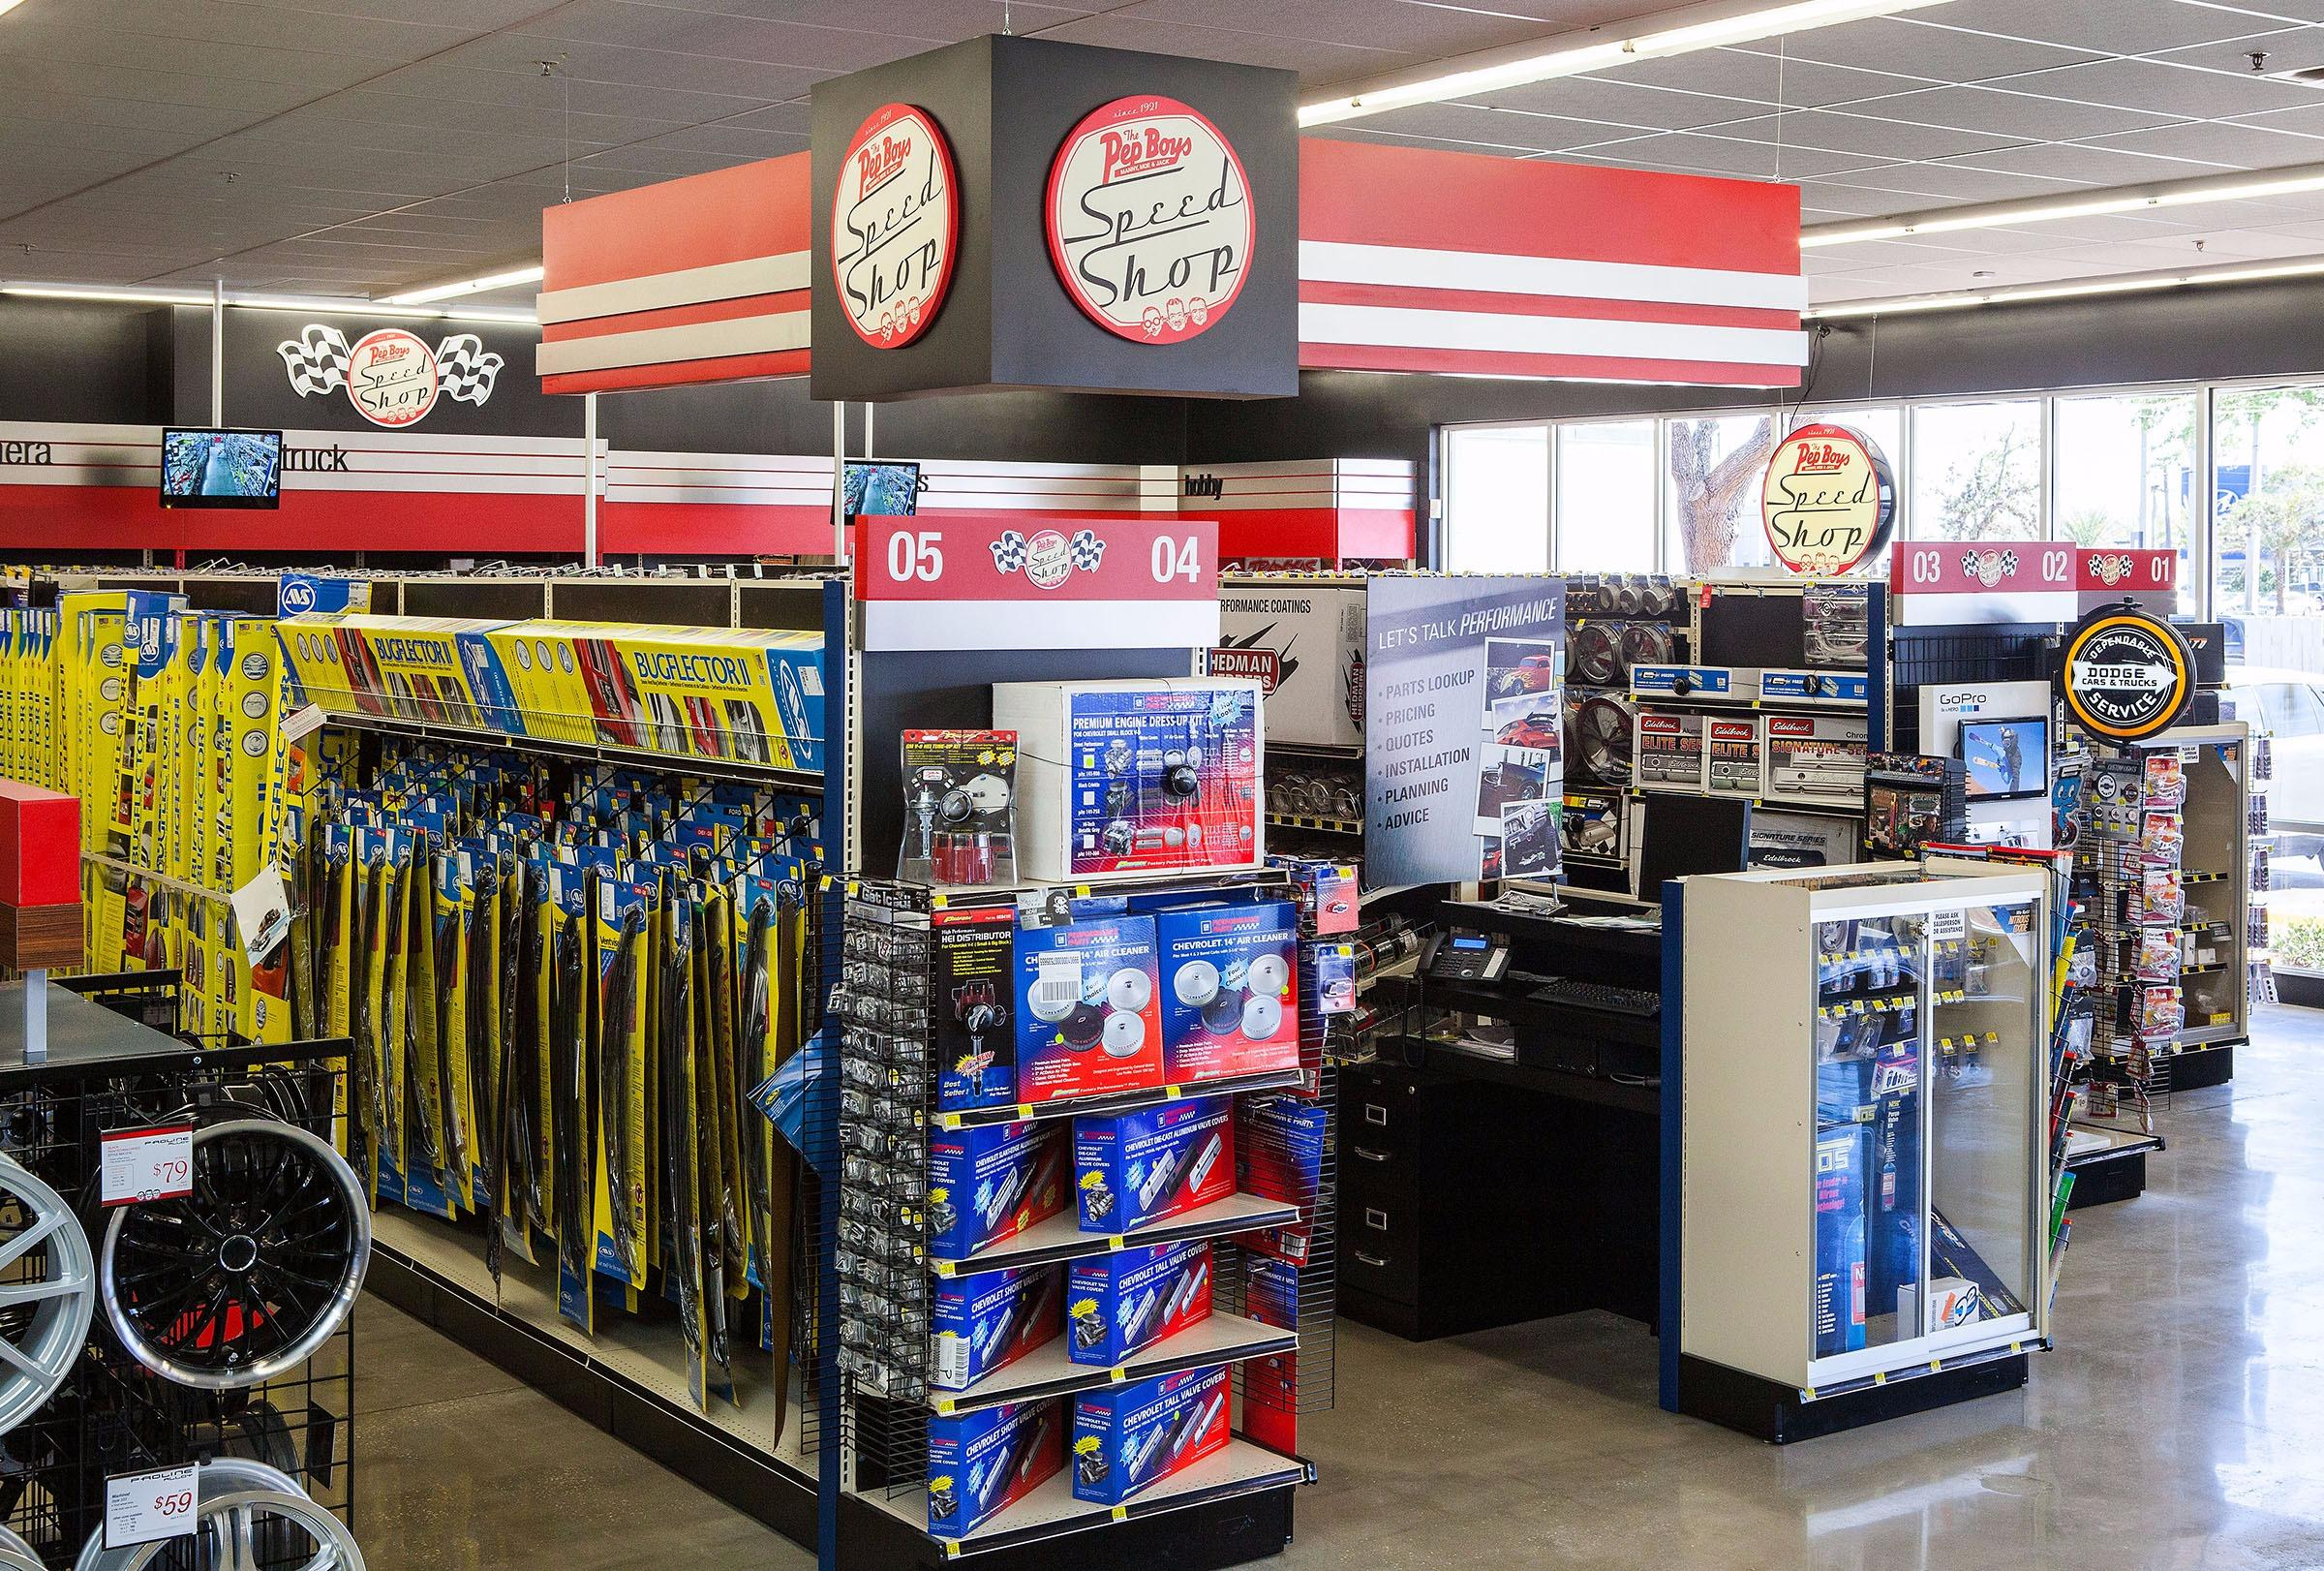 Comment from Pep B. of Pep Boys Auto Parts & Service Business Owner 4/5/ Corey, we regret to hear about your experience at one of our stores and would like to know more Corey, we regret to hear about your experience at one of our stores and would like to know more about your visit. 3/5(6).